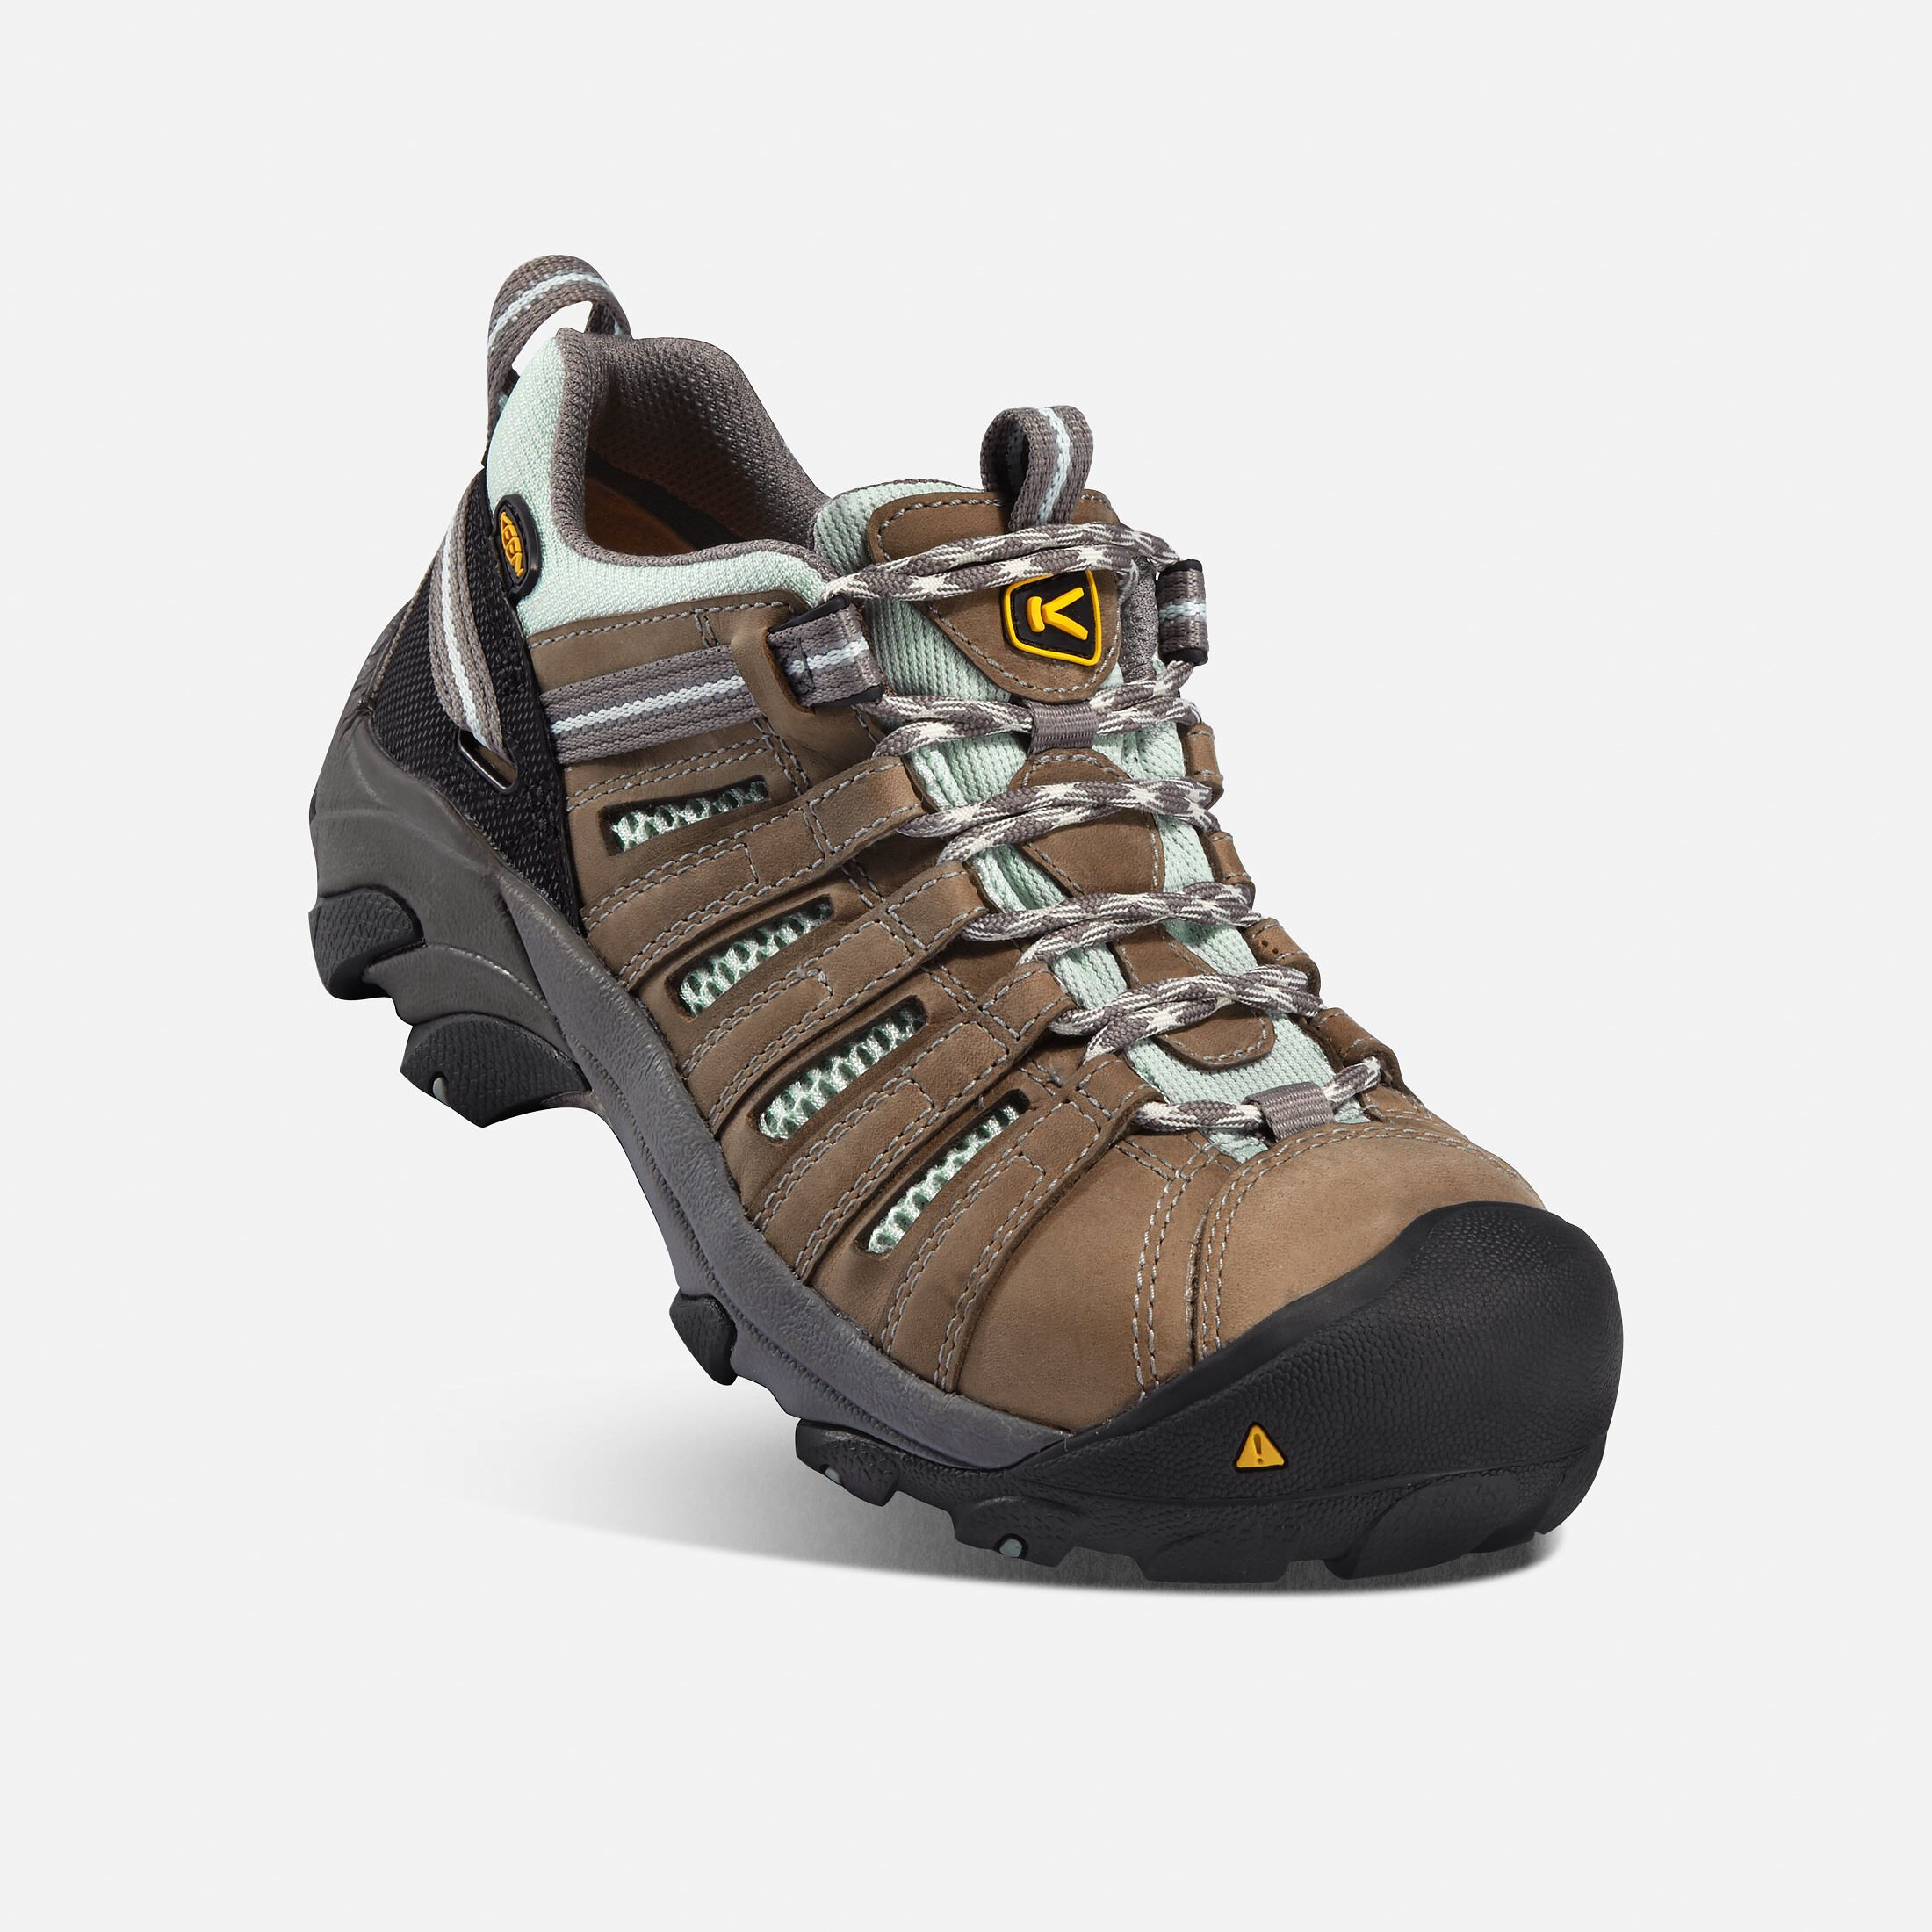 KEEN is committed to sustainable style and comfort that can't be beat. Official KEEN® Canada Site | Free Shipping | KEEN Footwear Shop the Official KEEN Footwear website for shoes, boots, bags, socks & clothing to fit every part of your KEEN HybridLife.